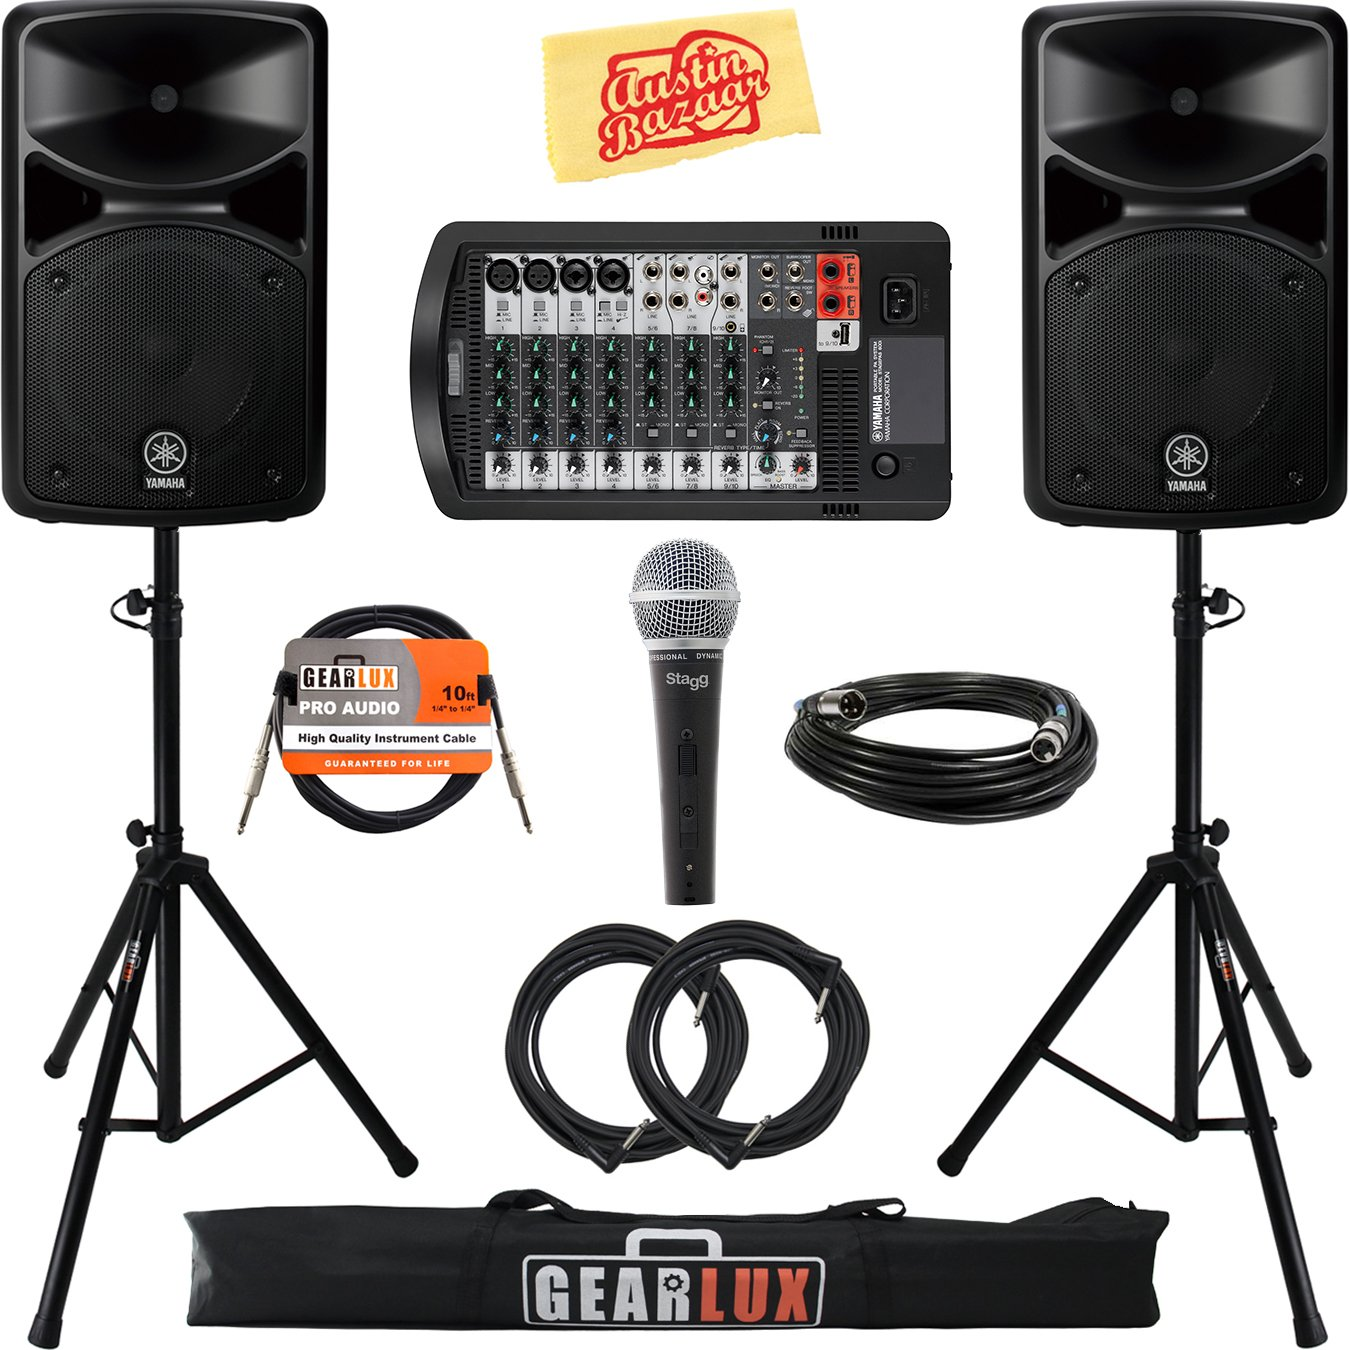 Yamaha STAGEPAS 600i Portable PA System Bundle with Microphone, Speaker Stands, Cables, and Austin Bazaar Polishing Cloth